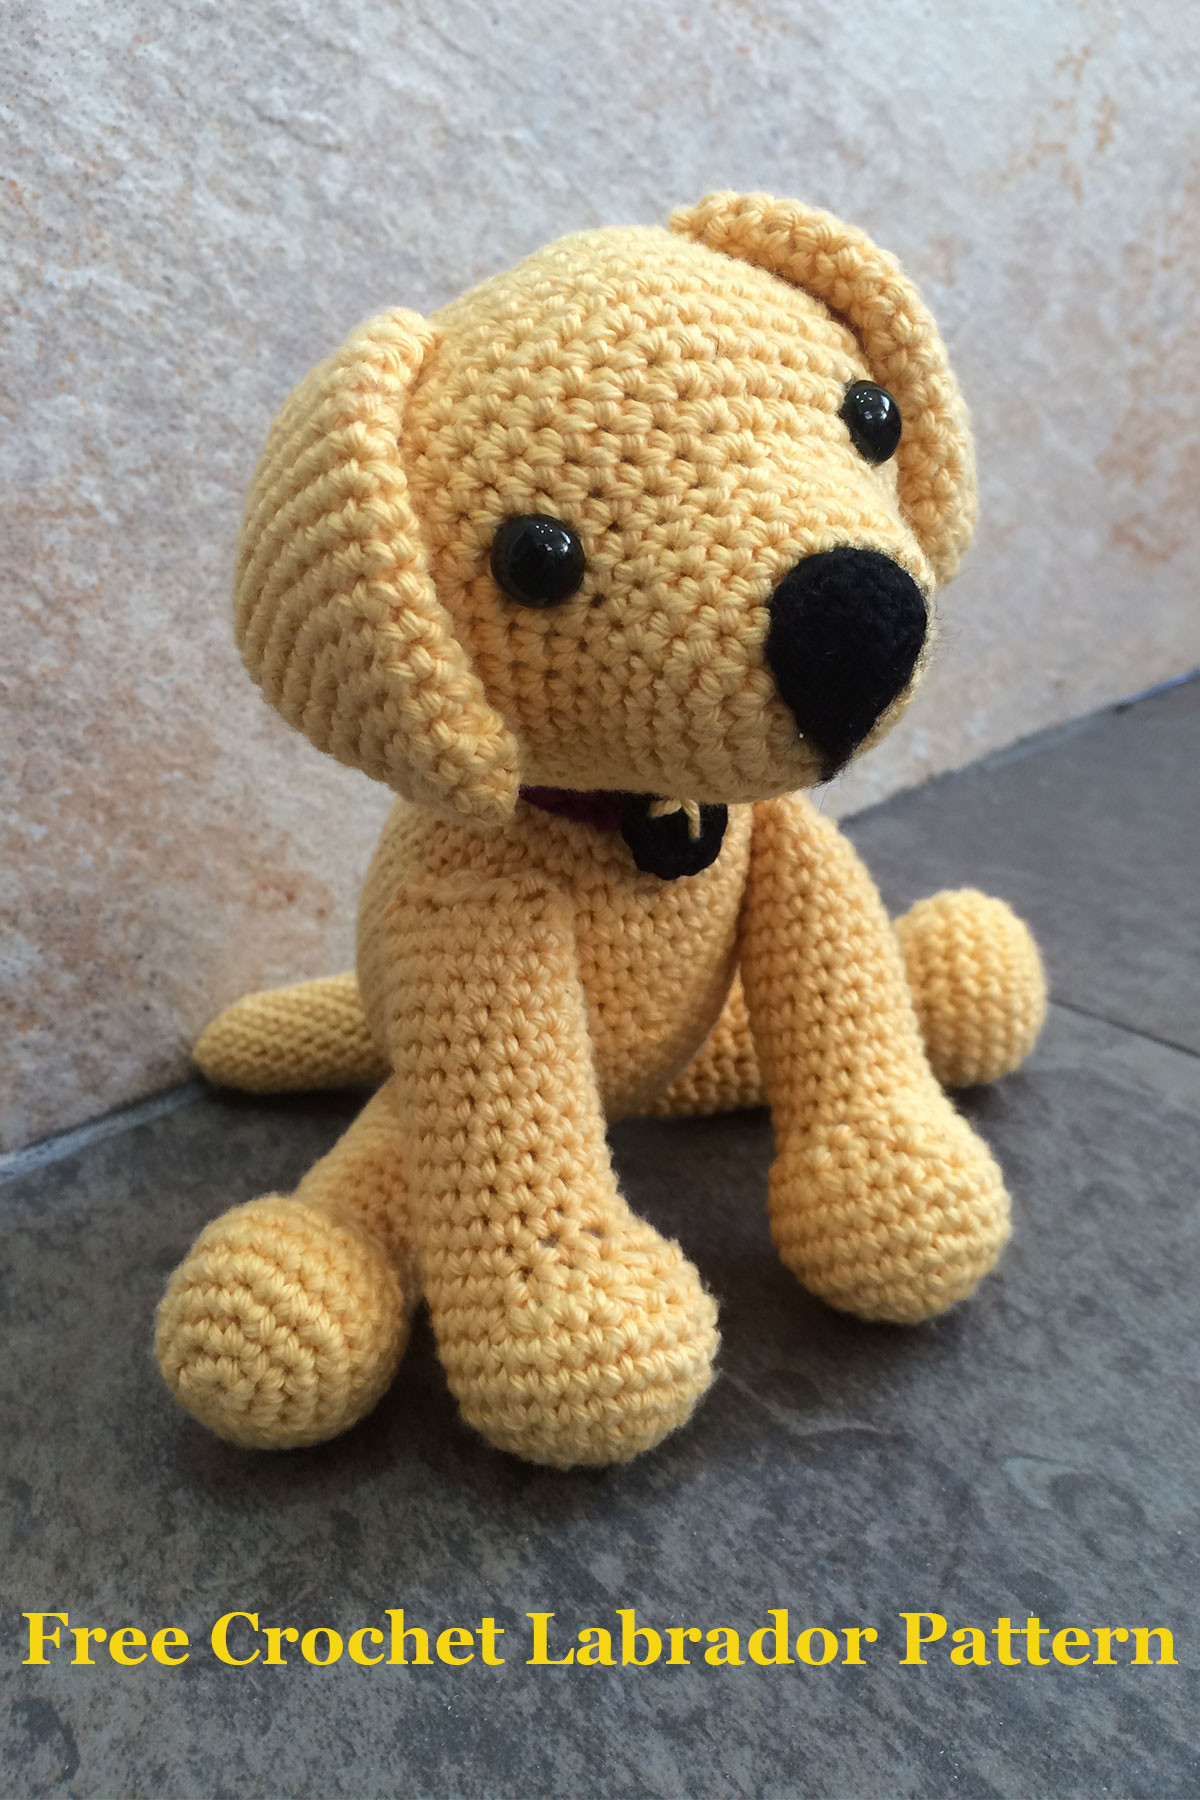 Free Crochet Dog Patterns Unique Crochet Labrador How to Make Your Own toy Dog the Of Superb 45 Pictures Free Crochet Dog Patterns